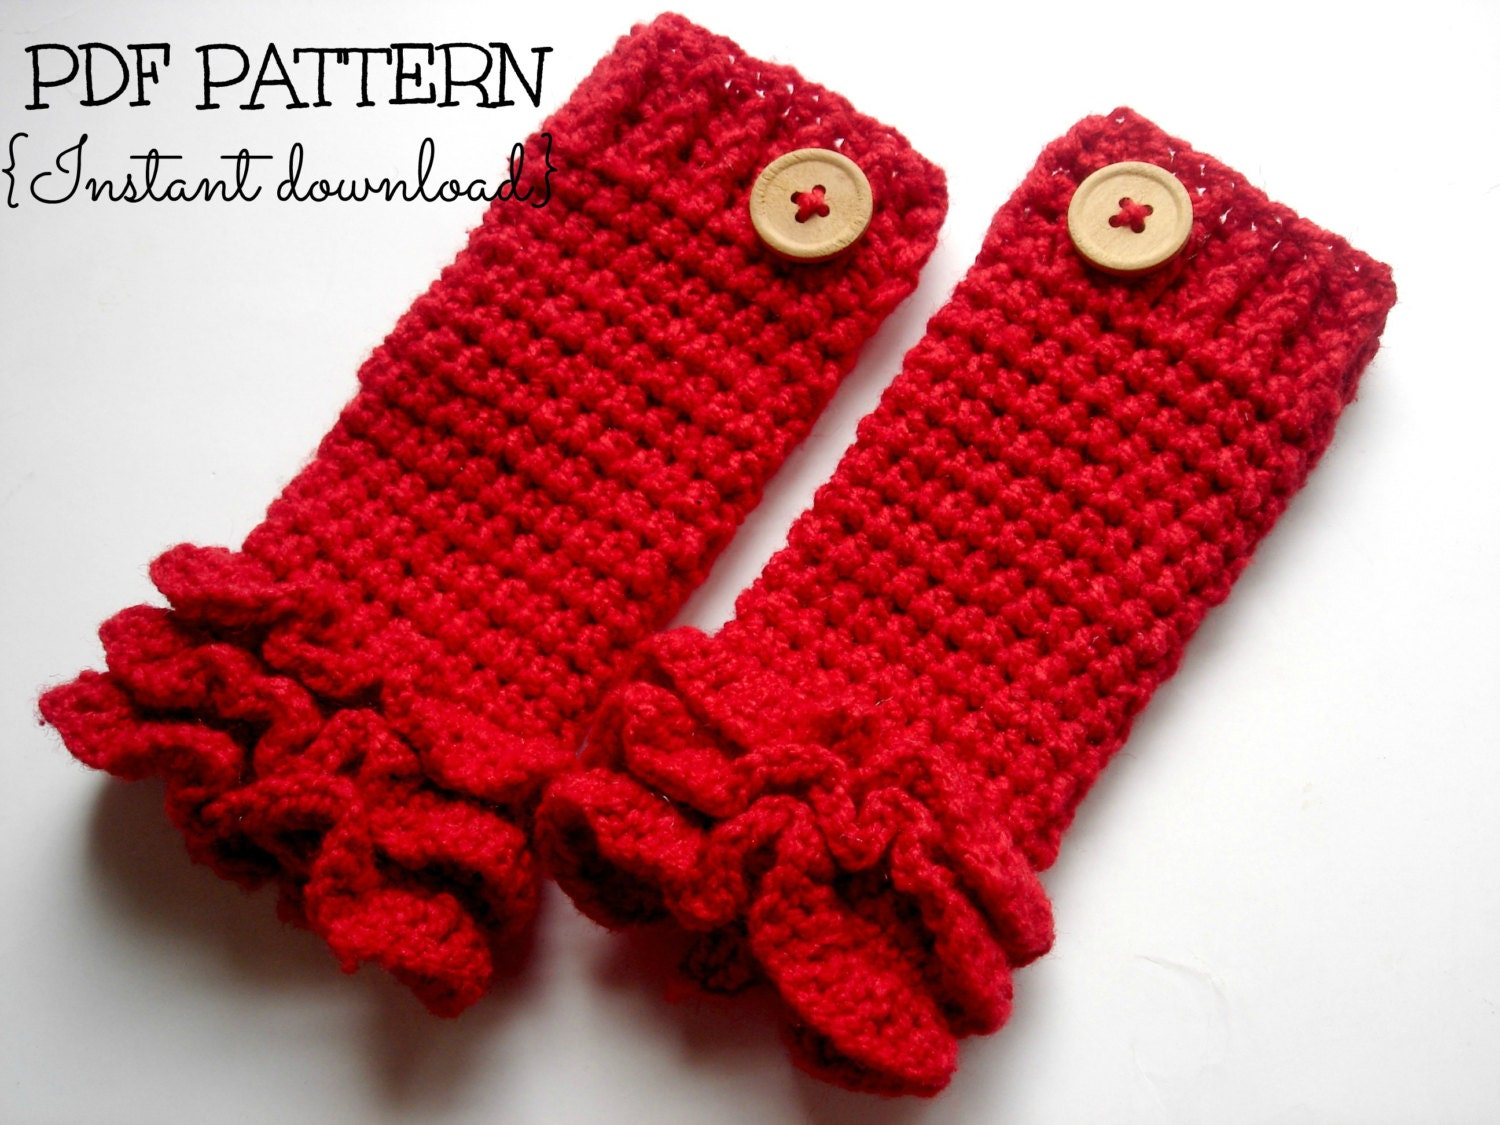 Free Crochet Patterns For Baby Leg Warmers